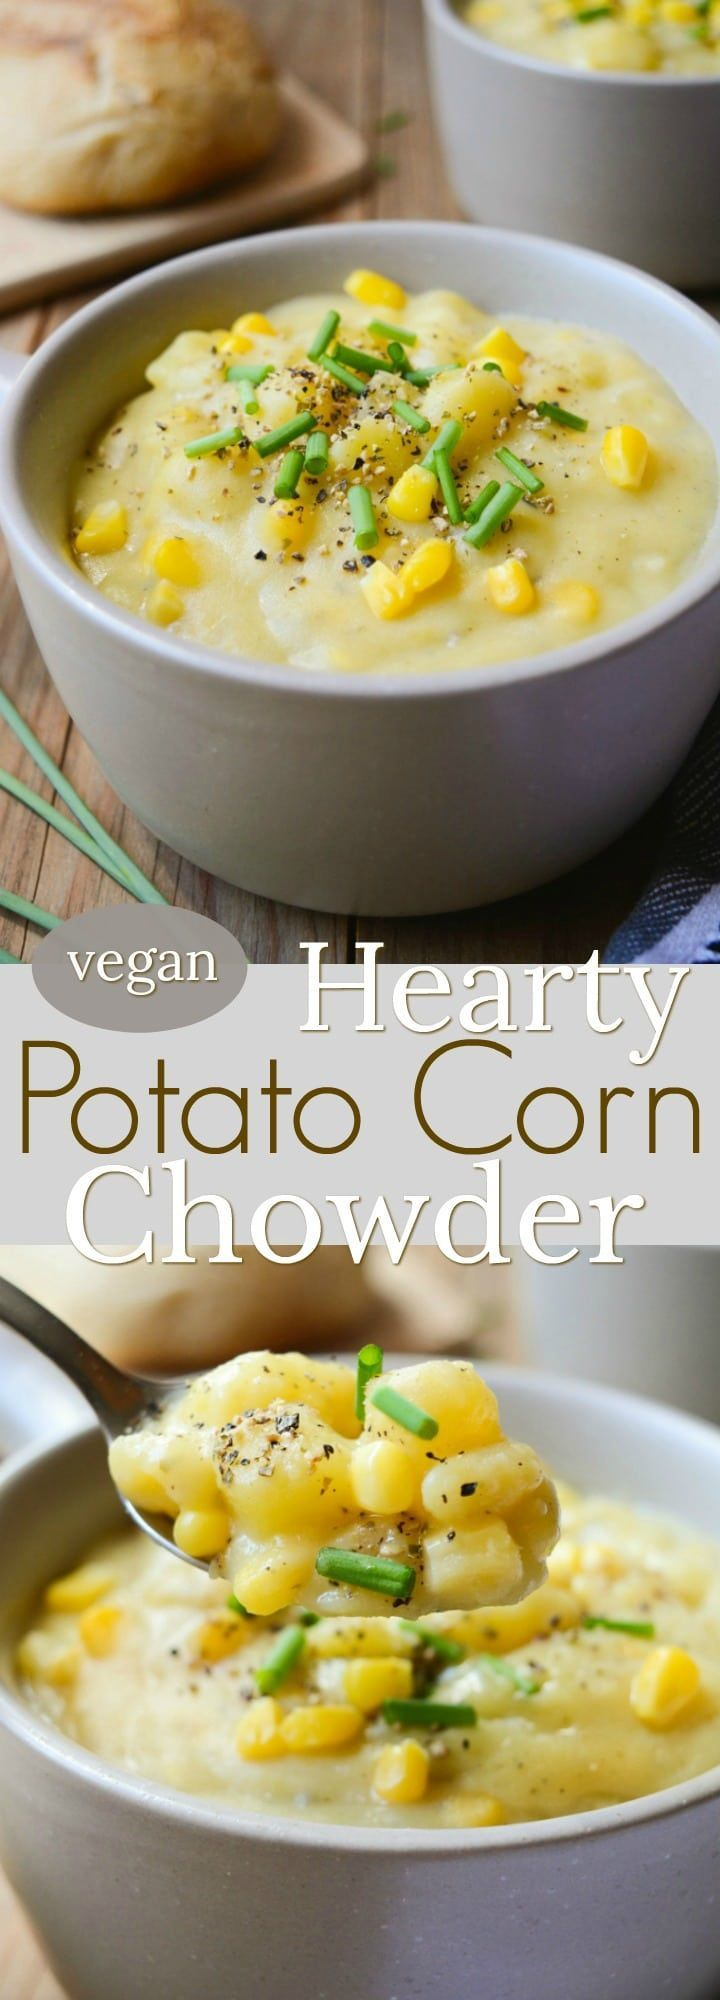 Vegan Potato Corn Chowder is a thick and hearty, dairy-free recipe.  It takes only one pot and a few simple ingredients you have in your kitchen.  This rich and chunky soup will keep you warm all winter long! #vegan #dairyfree #vegansoup #soup